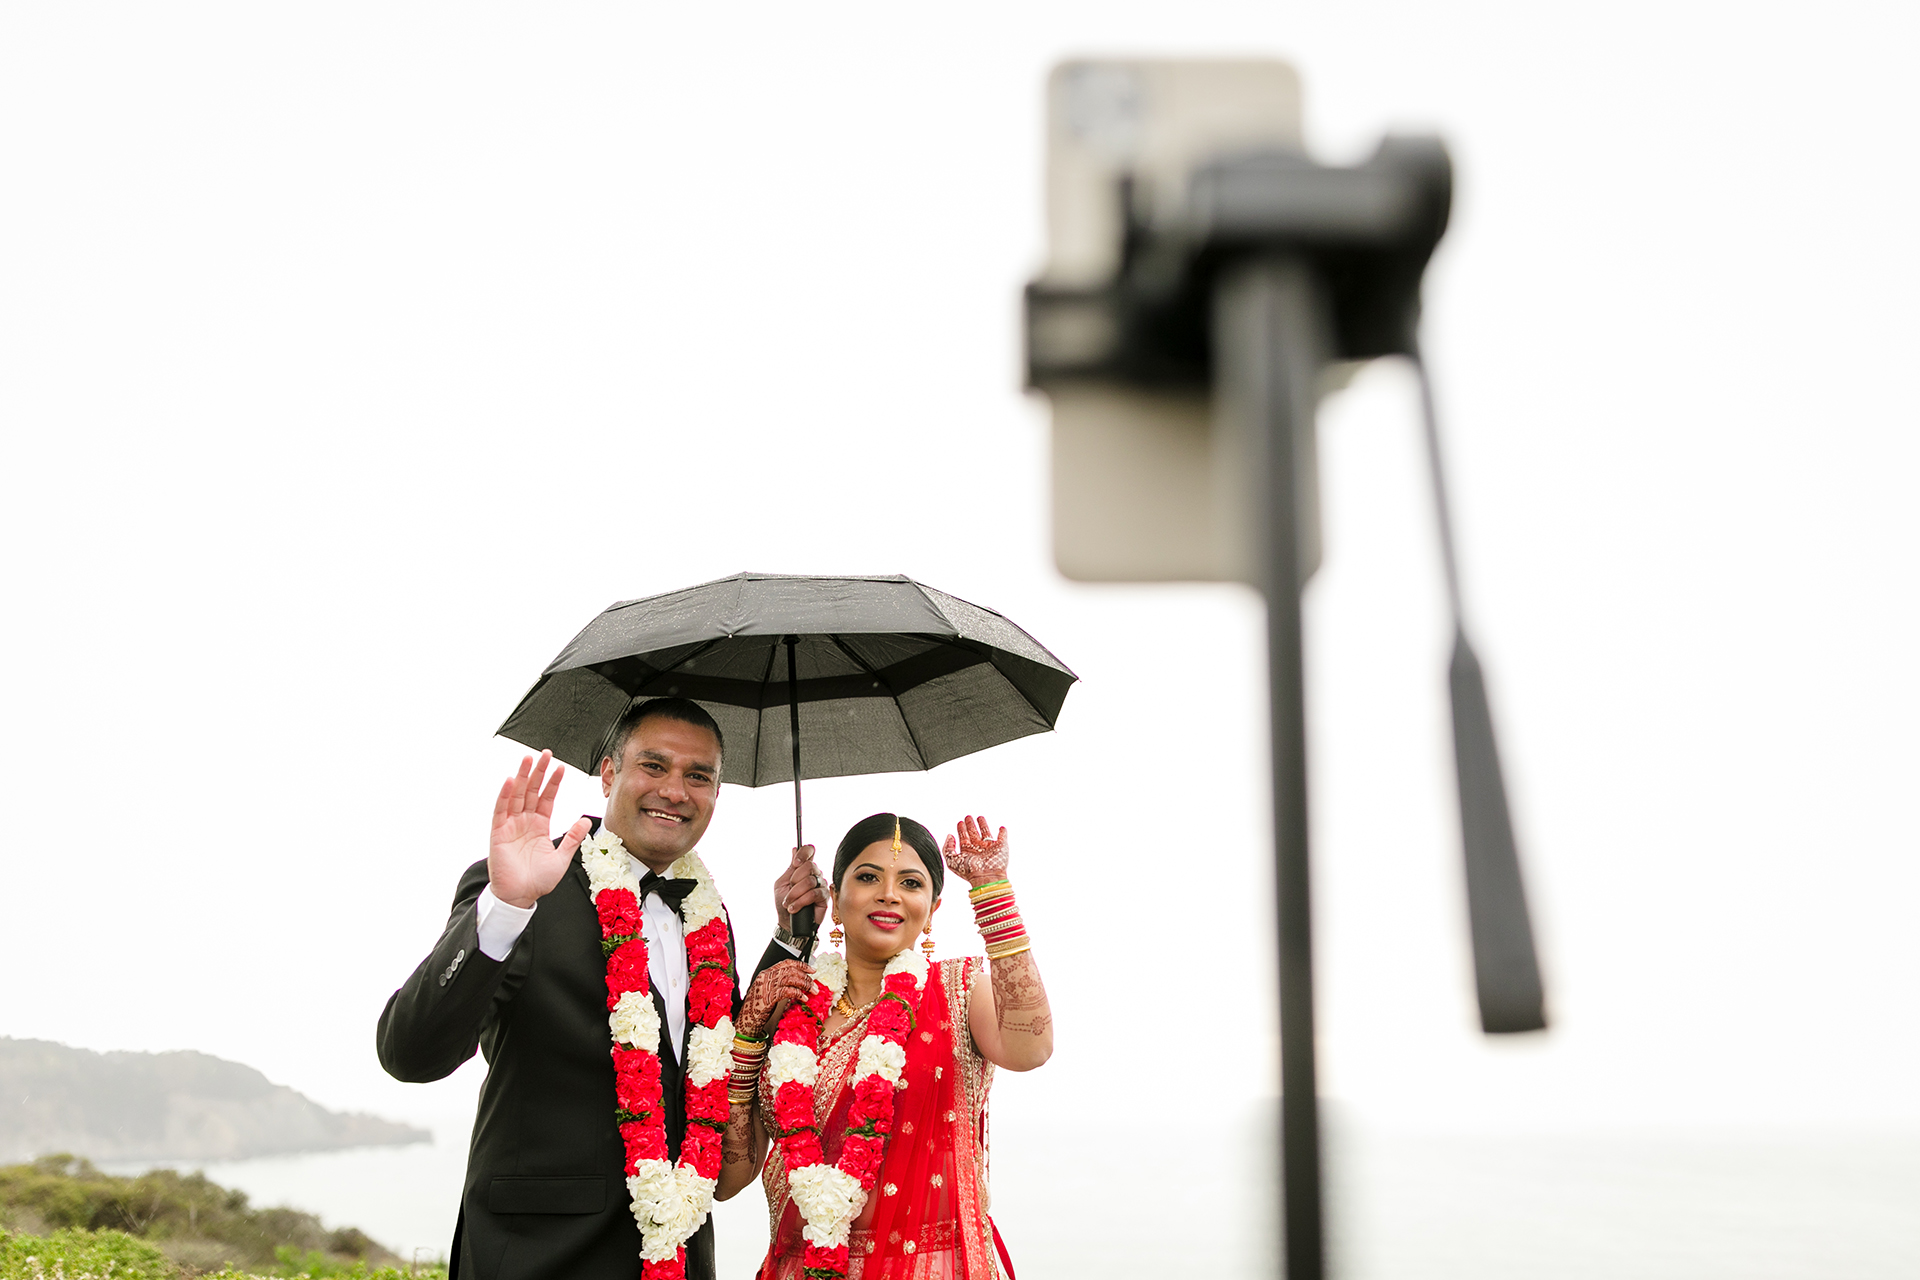 Golden Gate Bridge and Marin Headlands Wedding Image | Holding an umbrella to shelter themselves from the rain